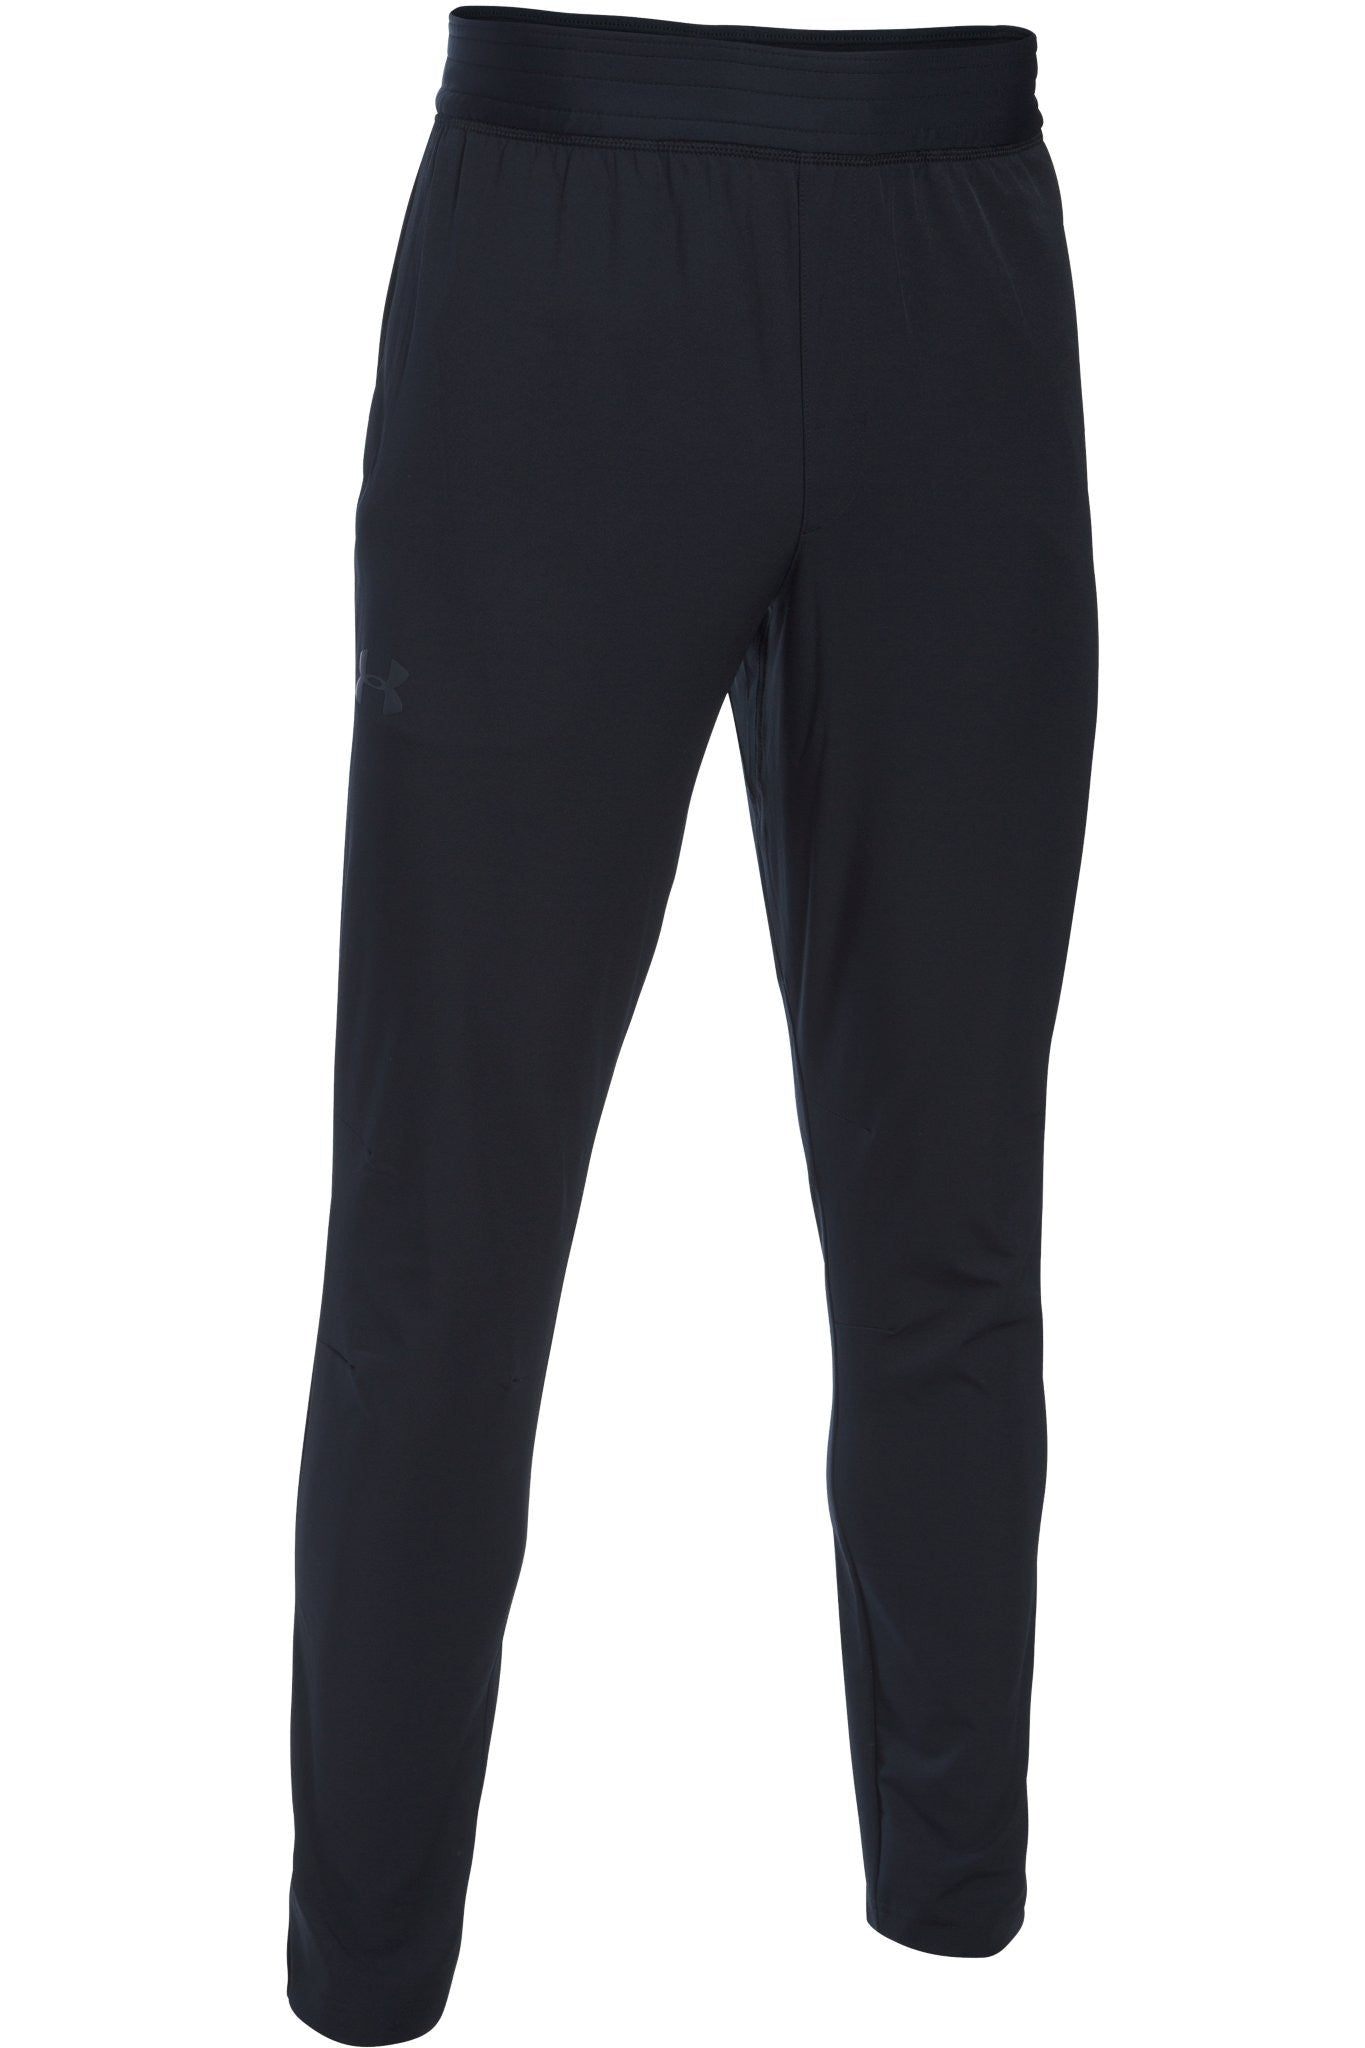 Under Armour UA WG Woven Tapered Pants image 6 - The Sports Edit